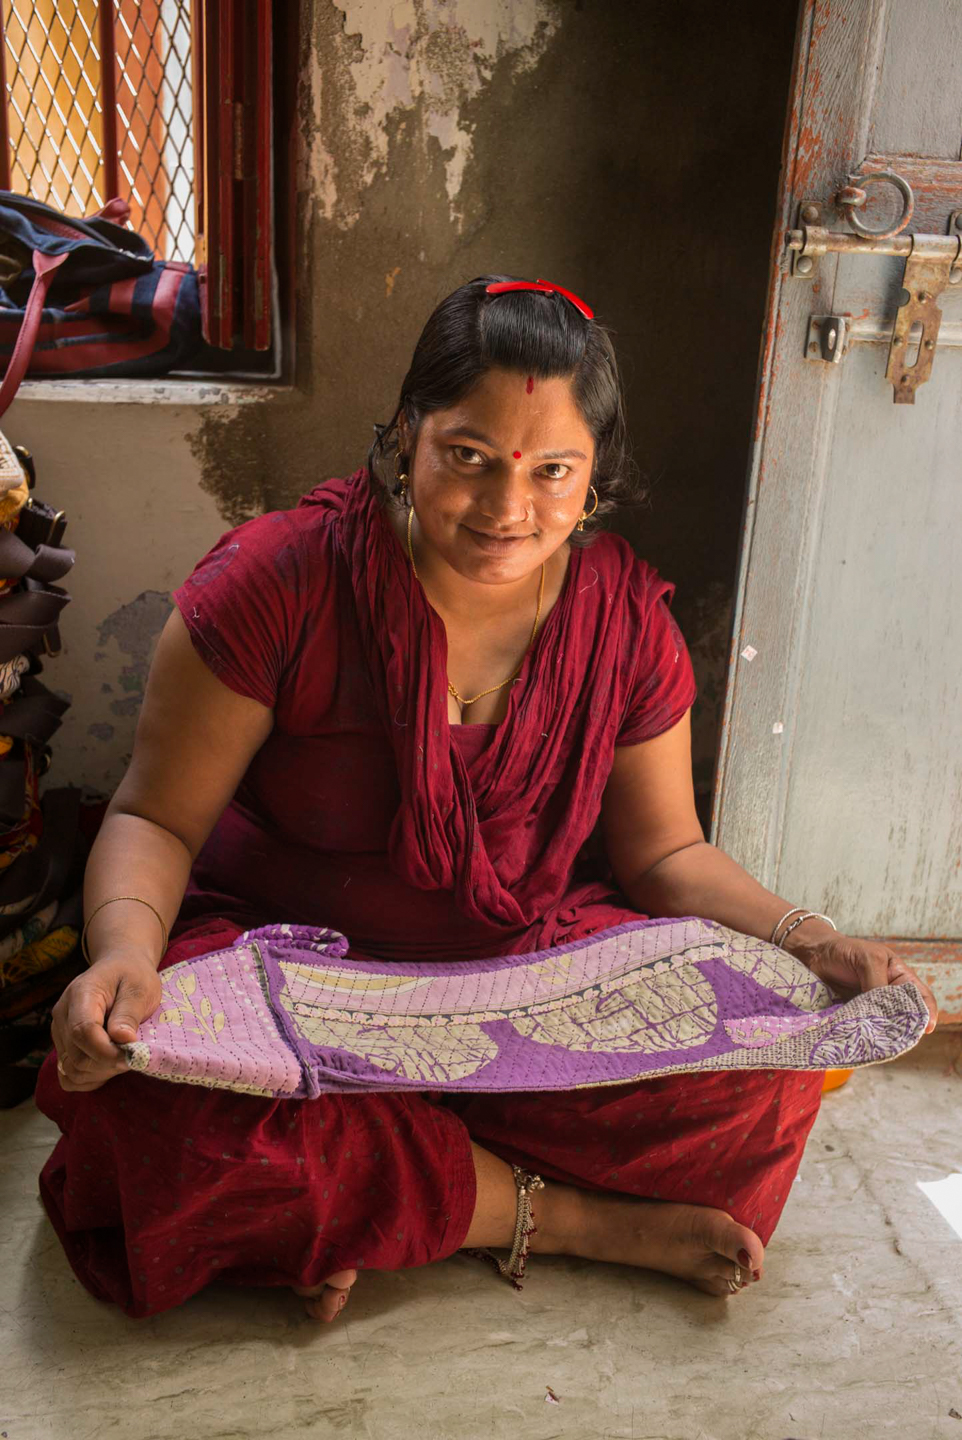 Laxmi, a Sari Bari employee, checks the work and stitching on a finished piece, the final step in the process before sending the work out or to inventory.